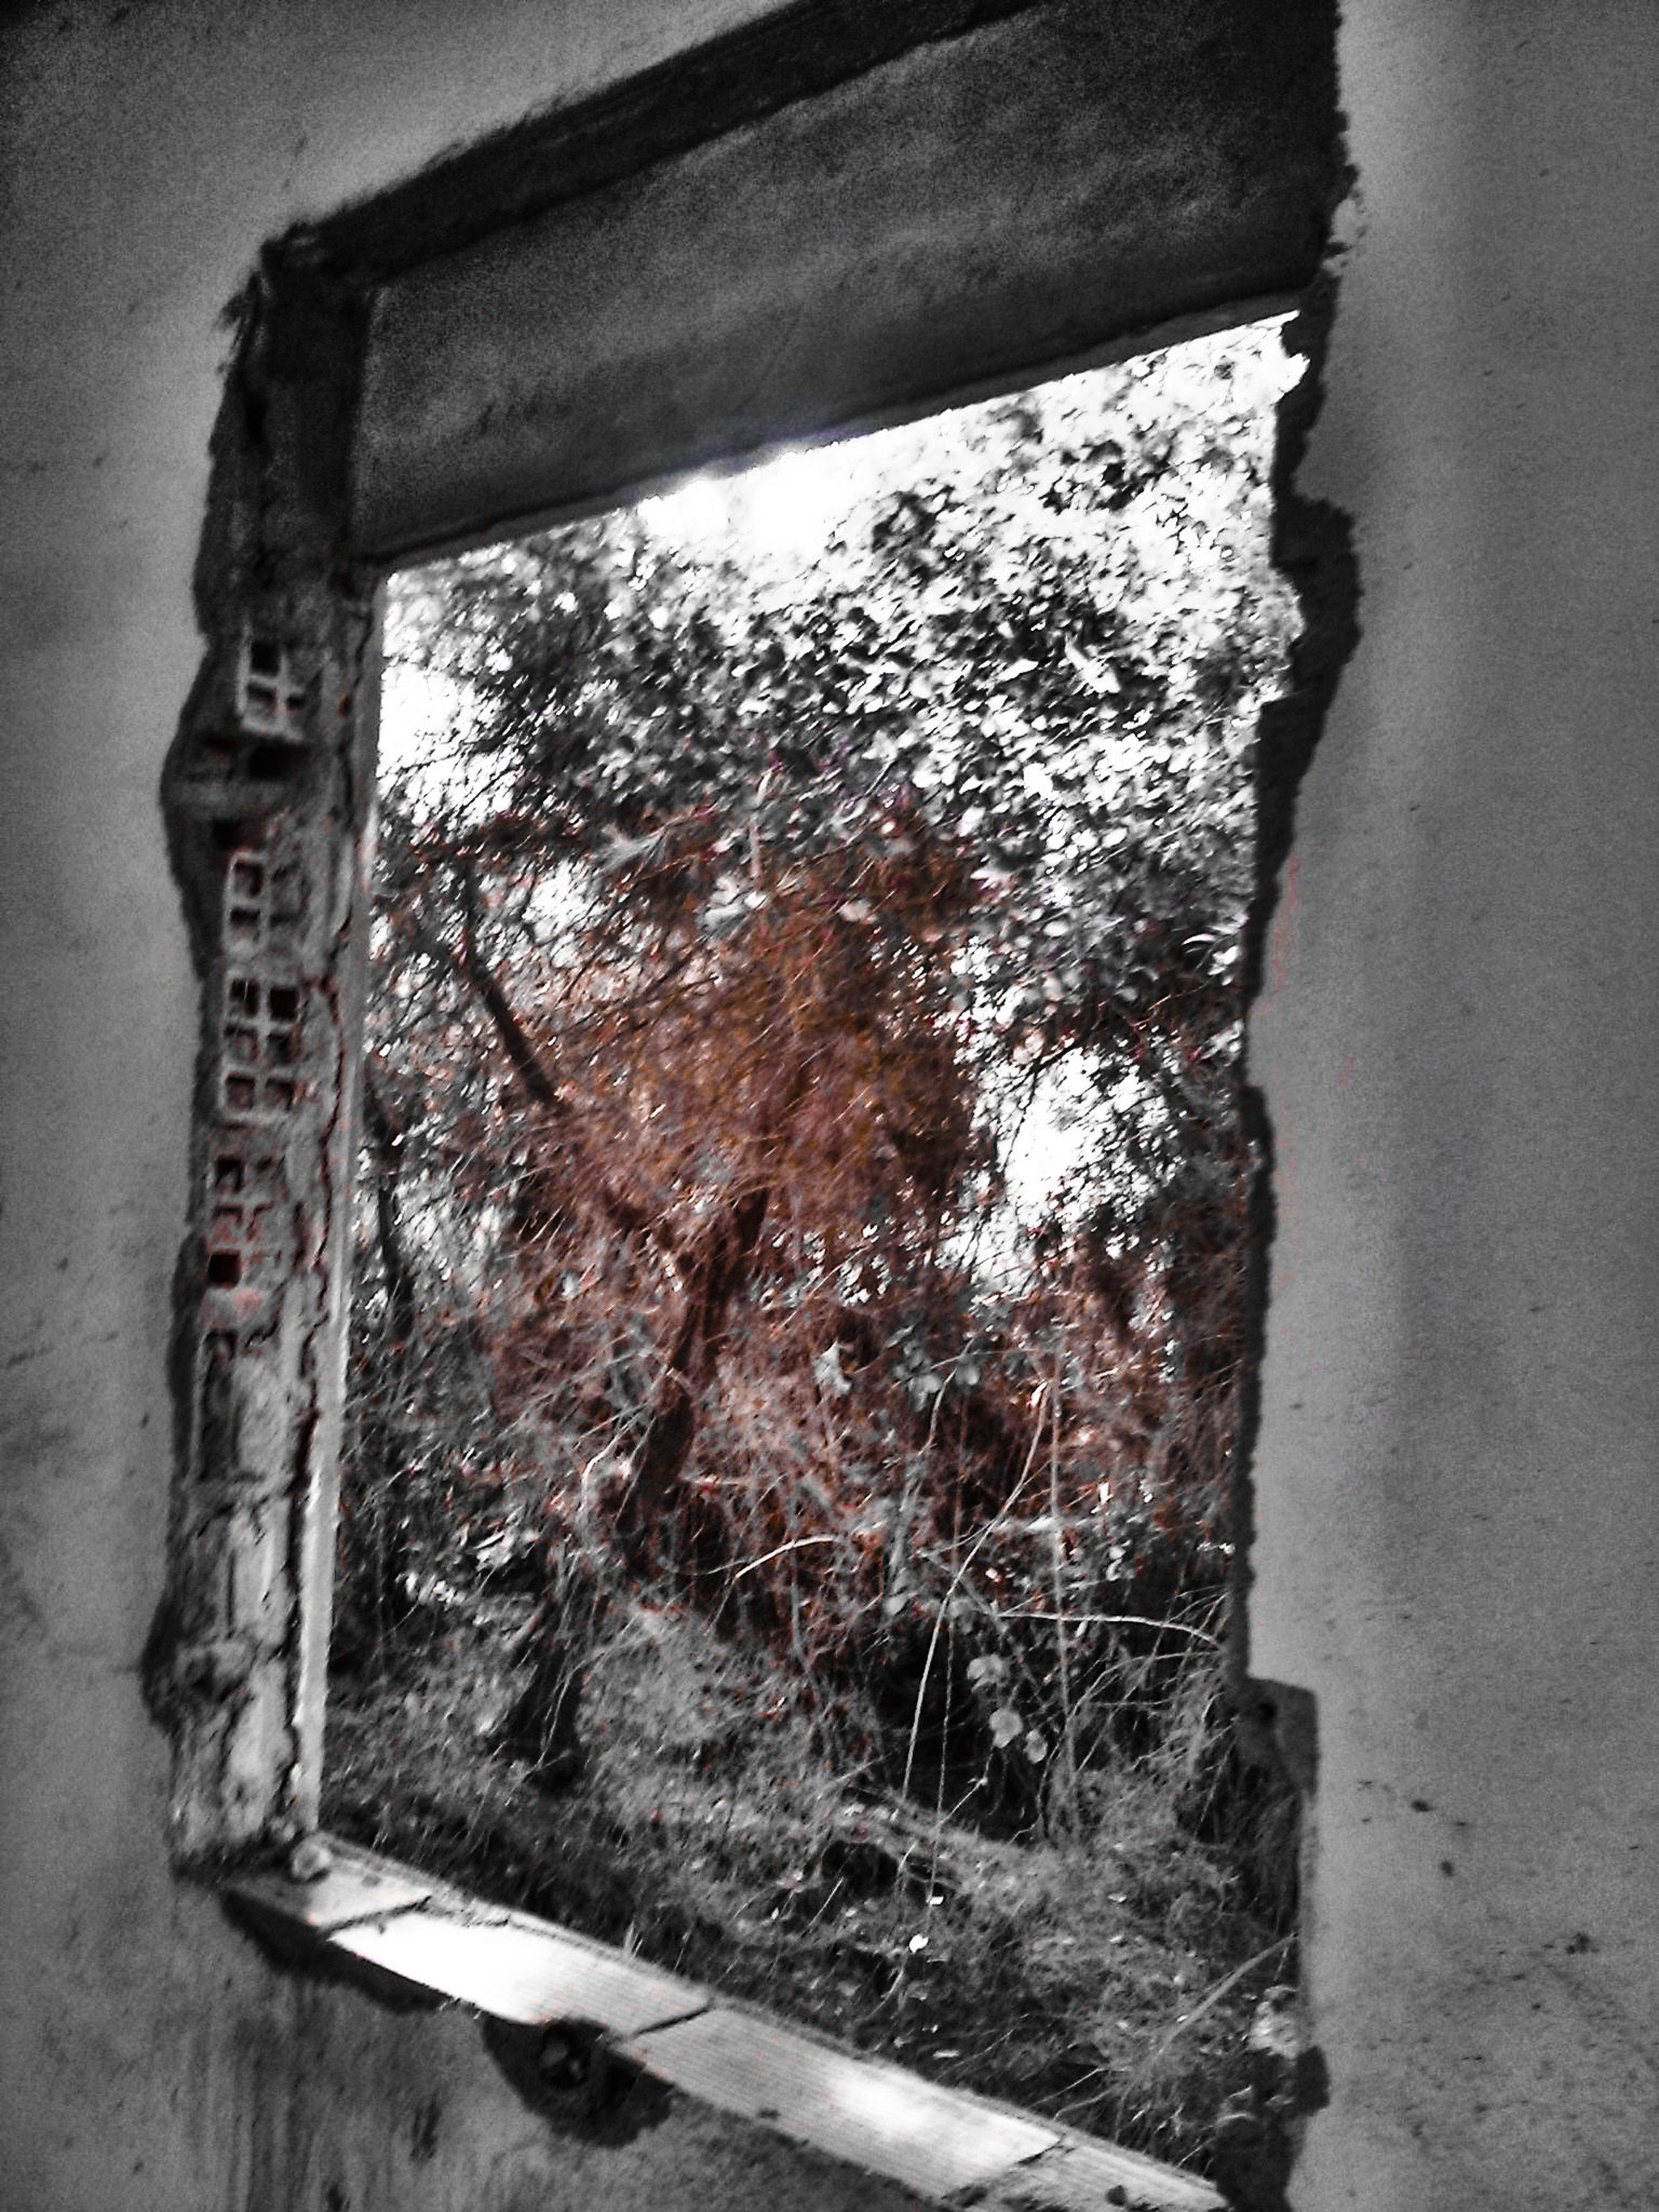 tree, wall - building feature, built structure, wall, day, growth, no people, architecture, old, nature, text, outdoors, house, window, sky, abandoned, plant, building exterior, low angle view, weathered